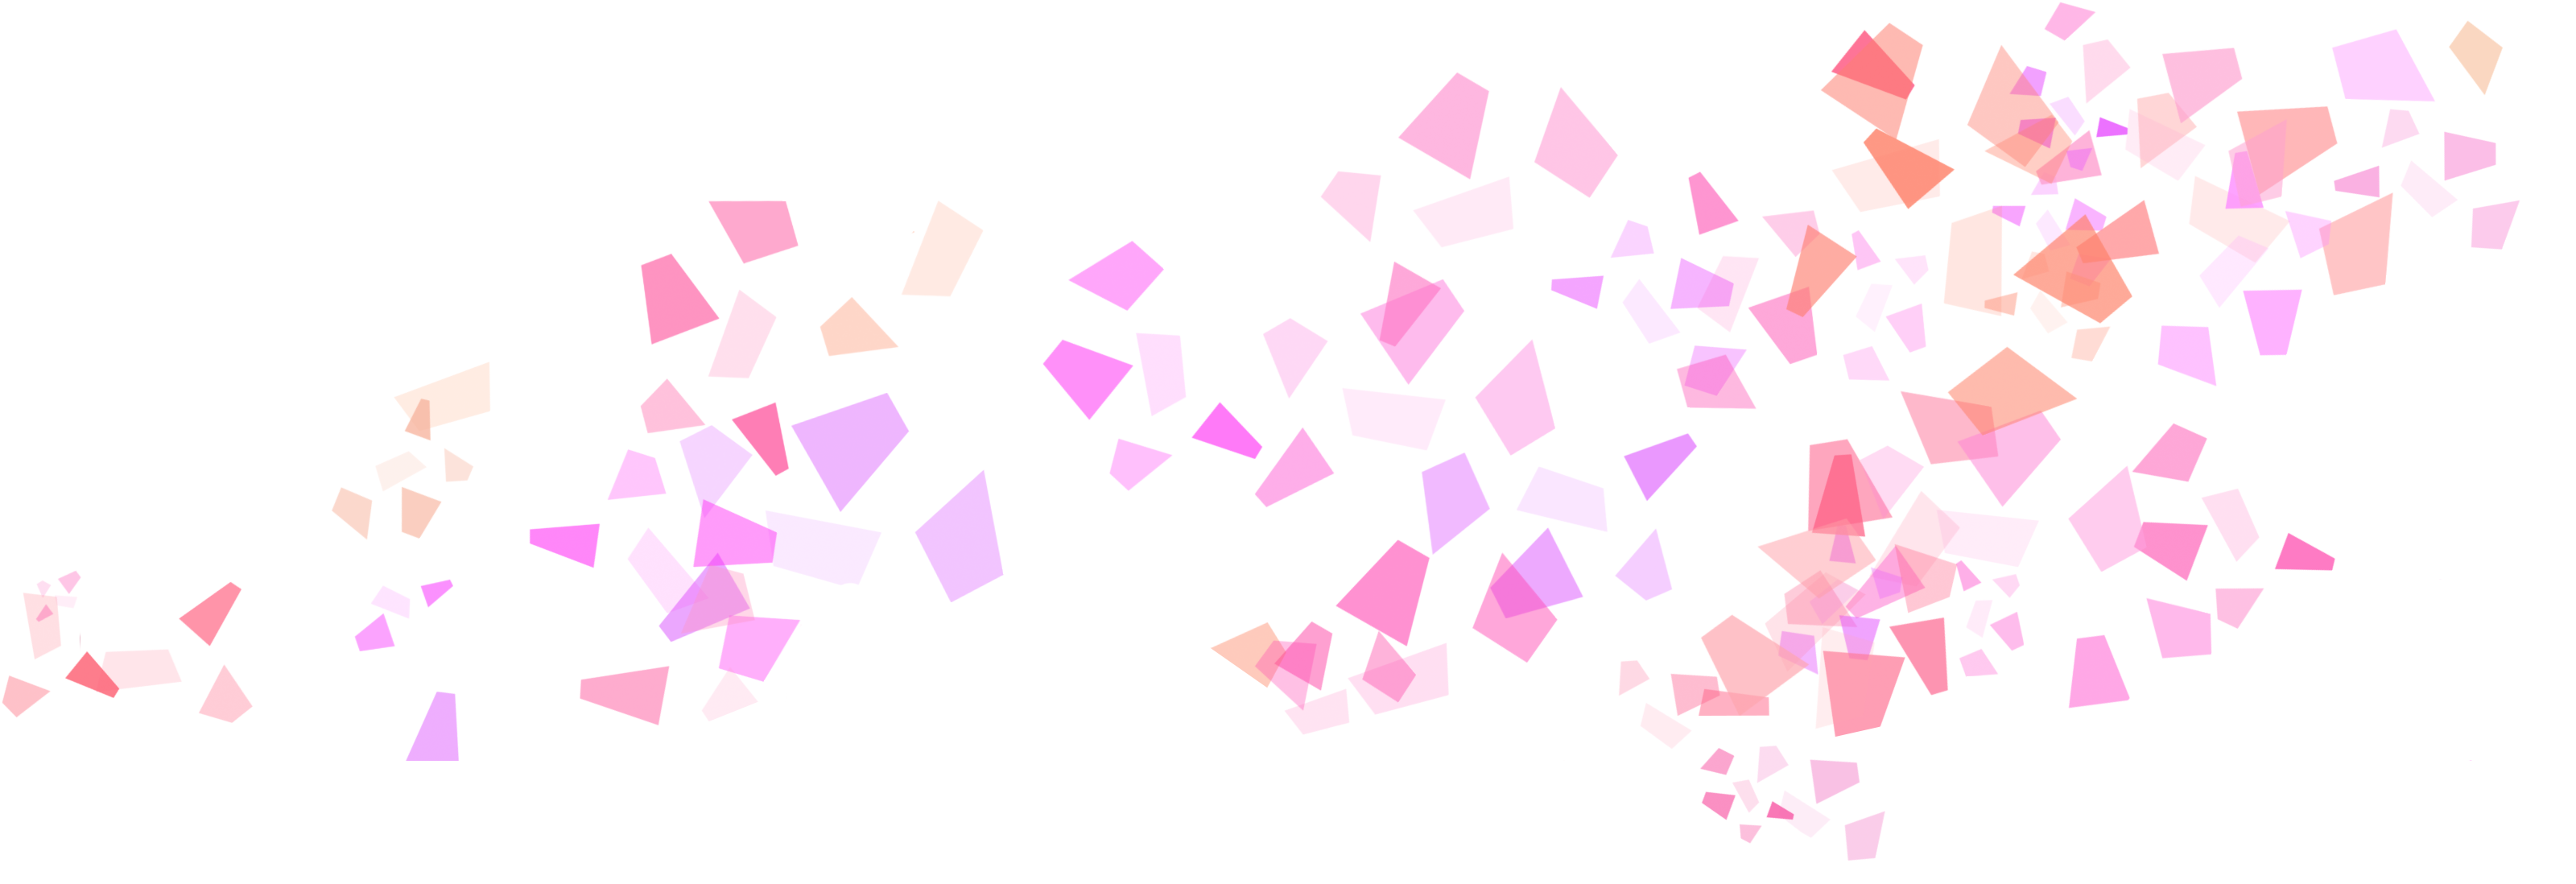 Pink Confetti Png Www Pixshark Com Images Galleries